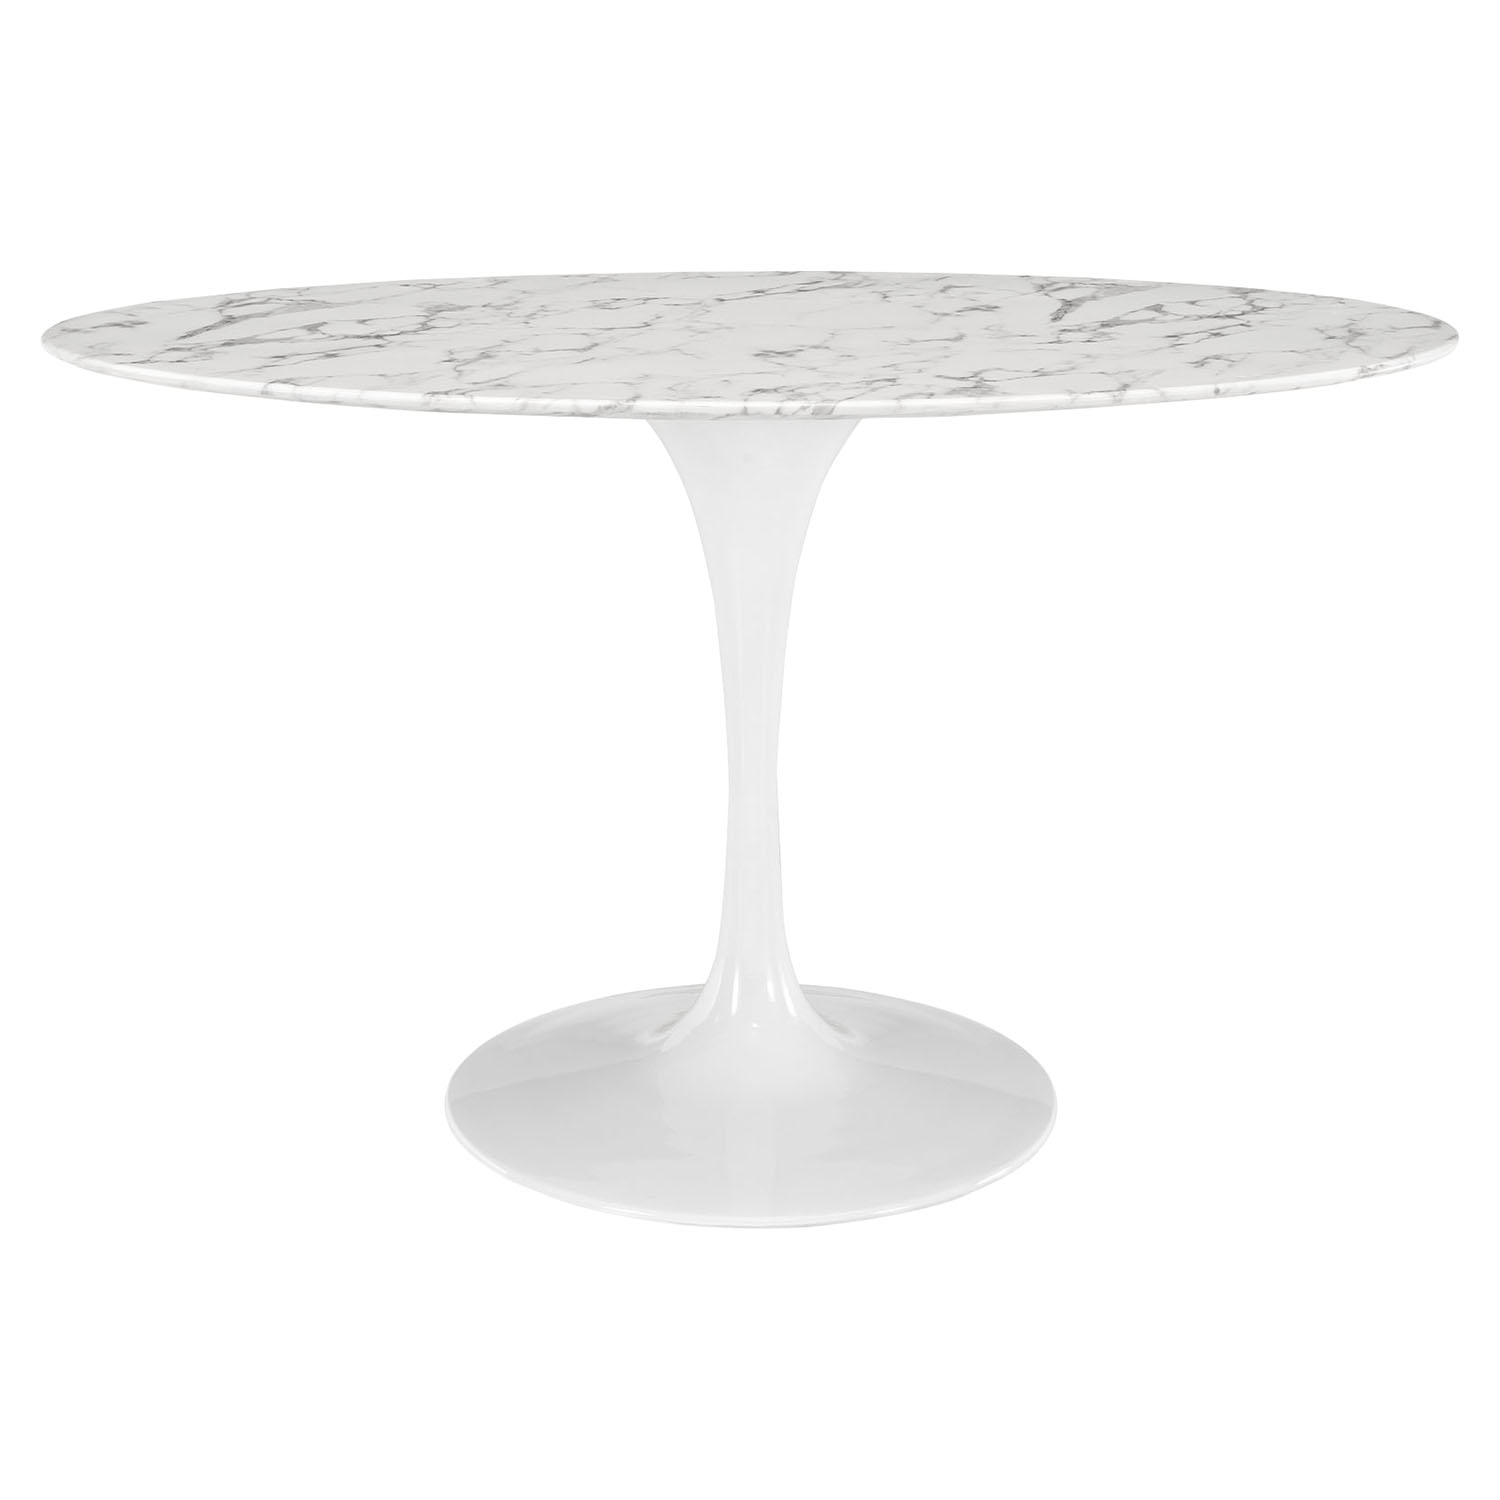 "Lippa 54"" Oval Shaped Dining Table - Artificial Marble Top - EEI-1134-WHI"